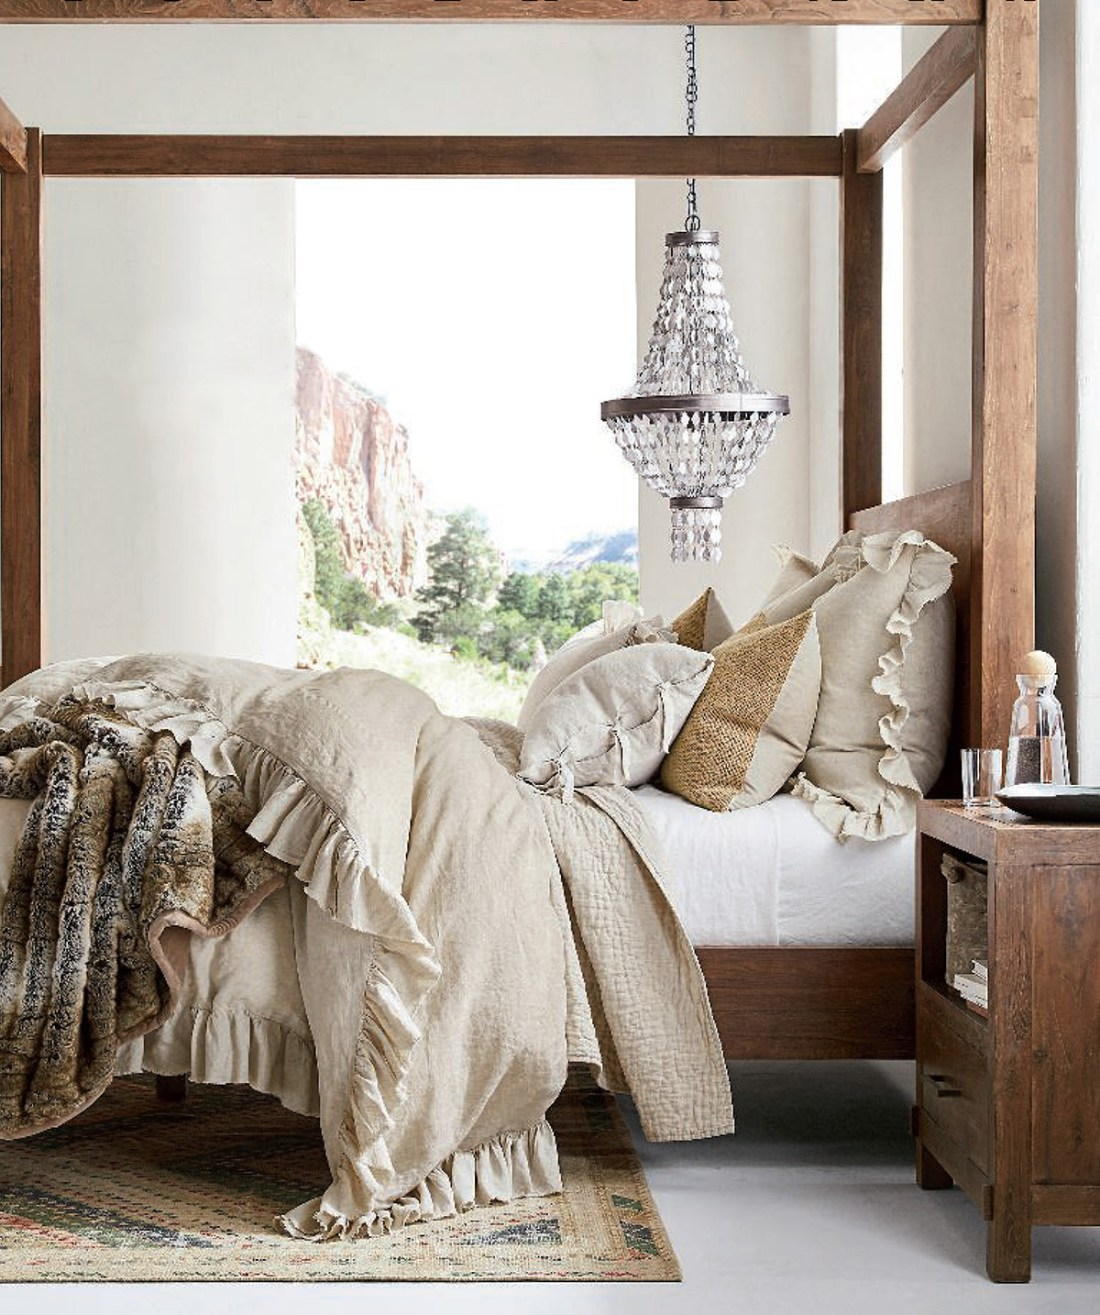 Sustainable Bedding | Pottery Barn Pre-Fall 2019 Catalog